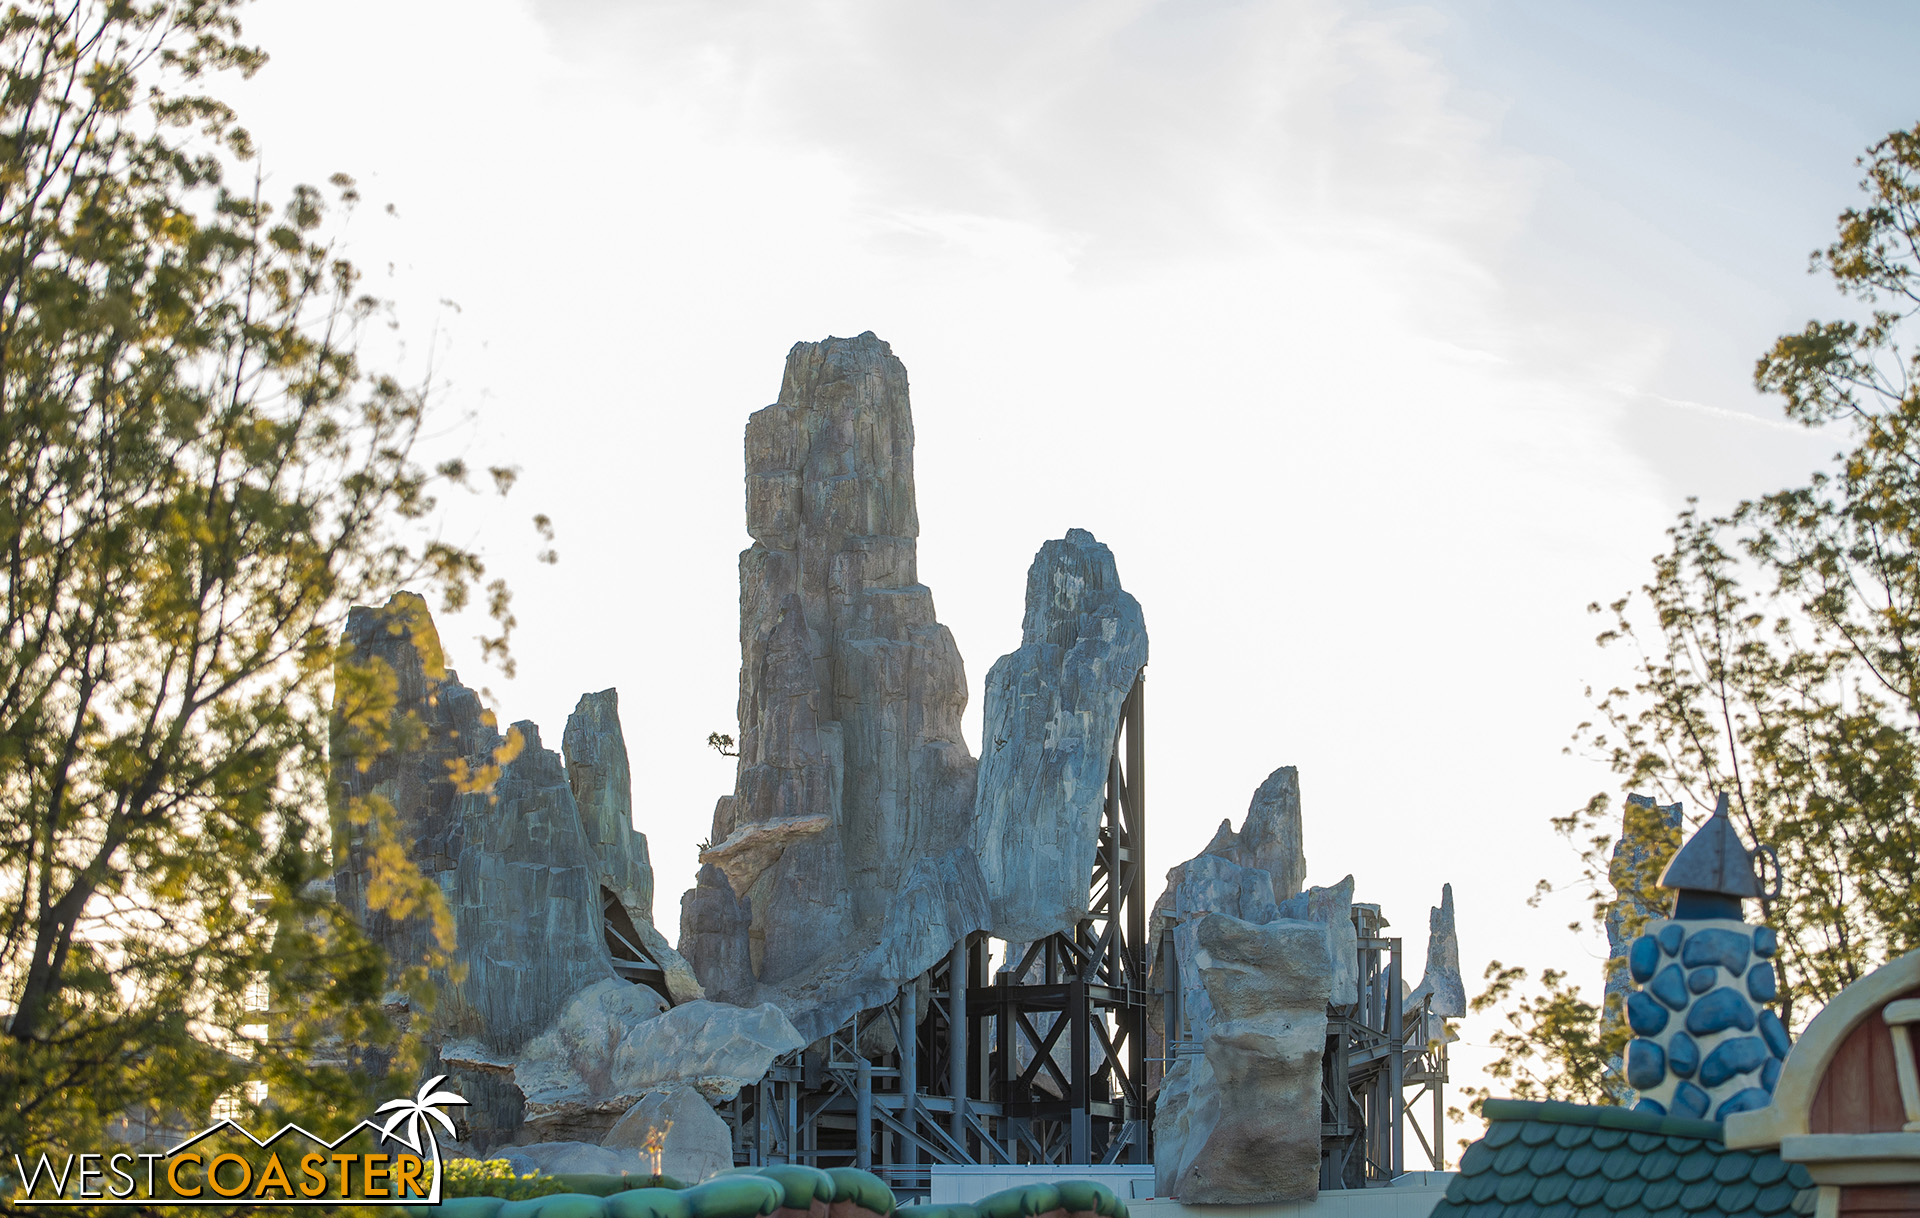 The ride vehicles for the main part of Rise of the Resistance will be trackless and radio-controlled, similar to Tokyo Disneyland's Pooh's Hunny Hunt or Walt Disney Studio's Ratatouille ride.